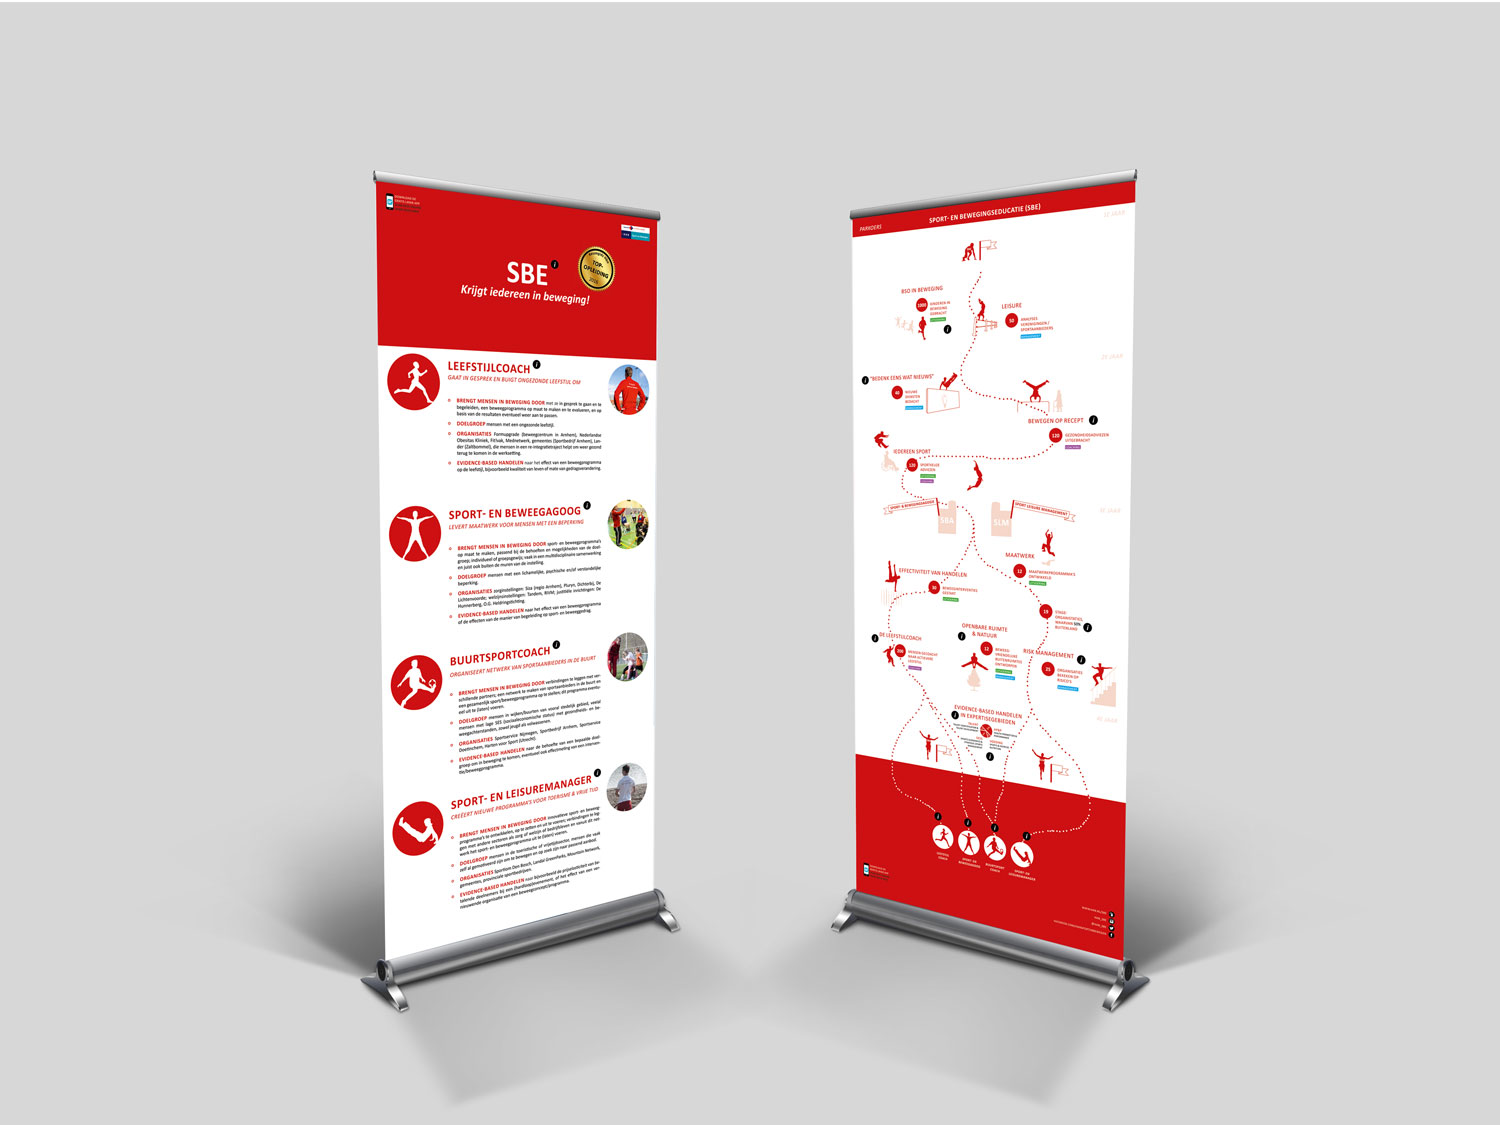 SBE infographic 2015 banner